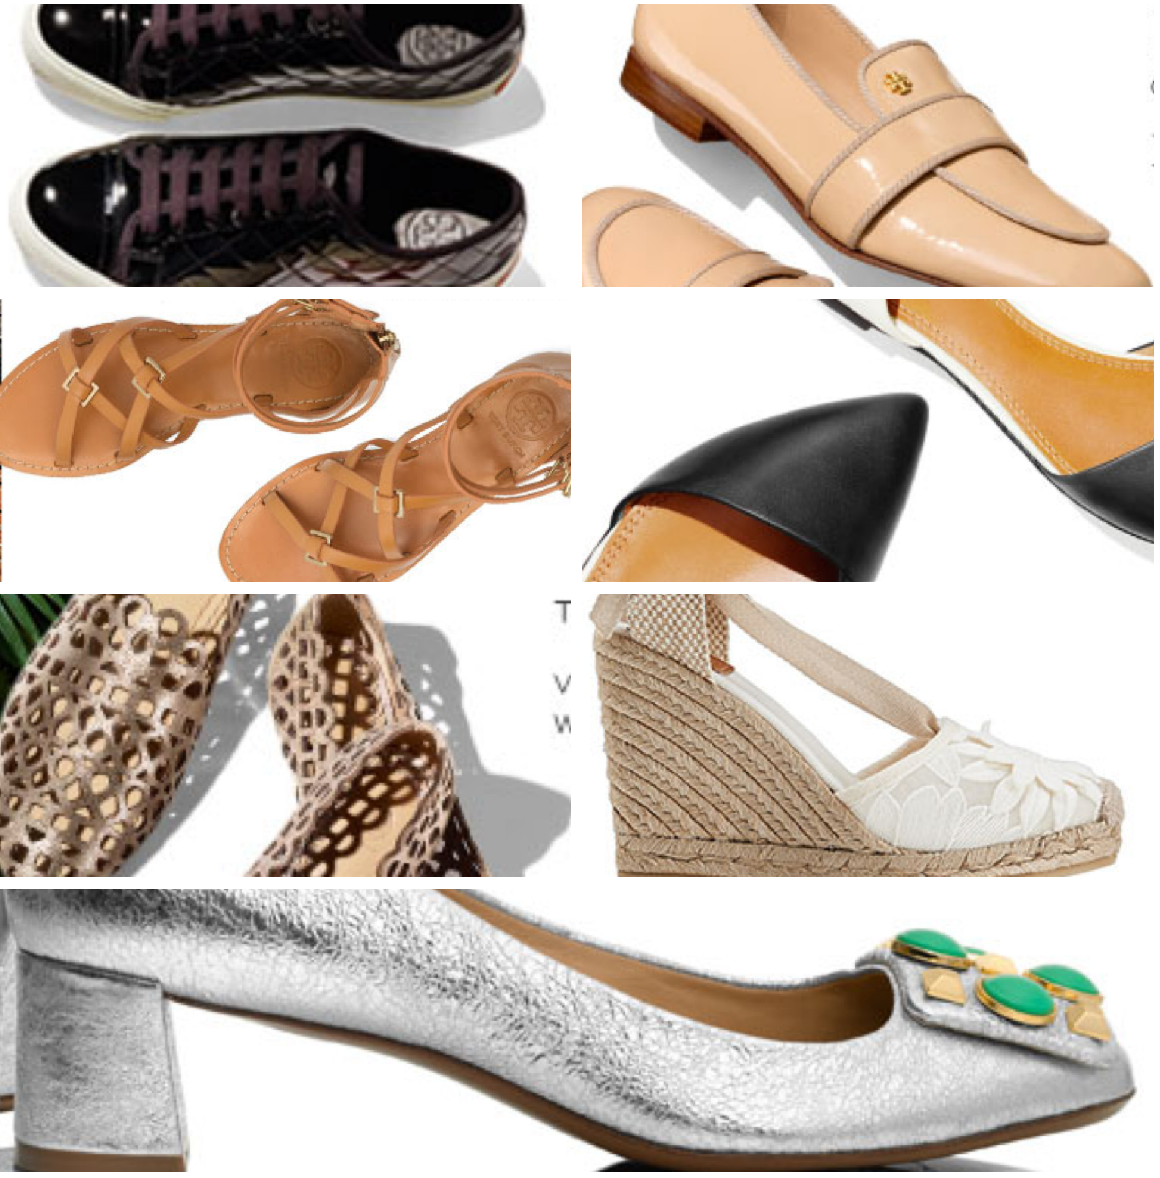 a3f4a65923c8 Tory Burch Shoe Guide  Tory s Most-Wanted Styles  ToryBurch - Mom ...